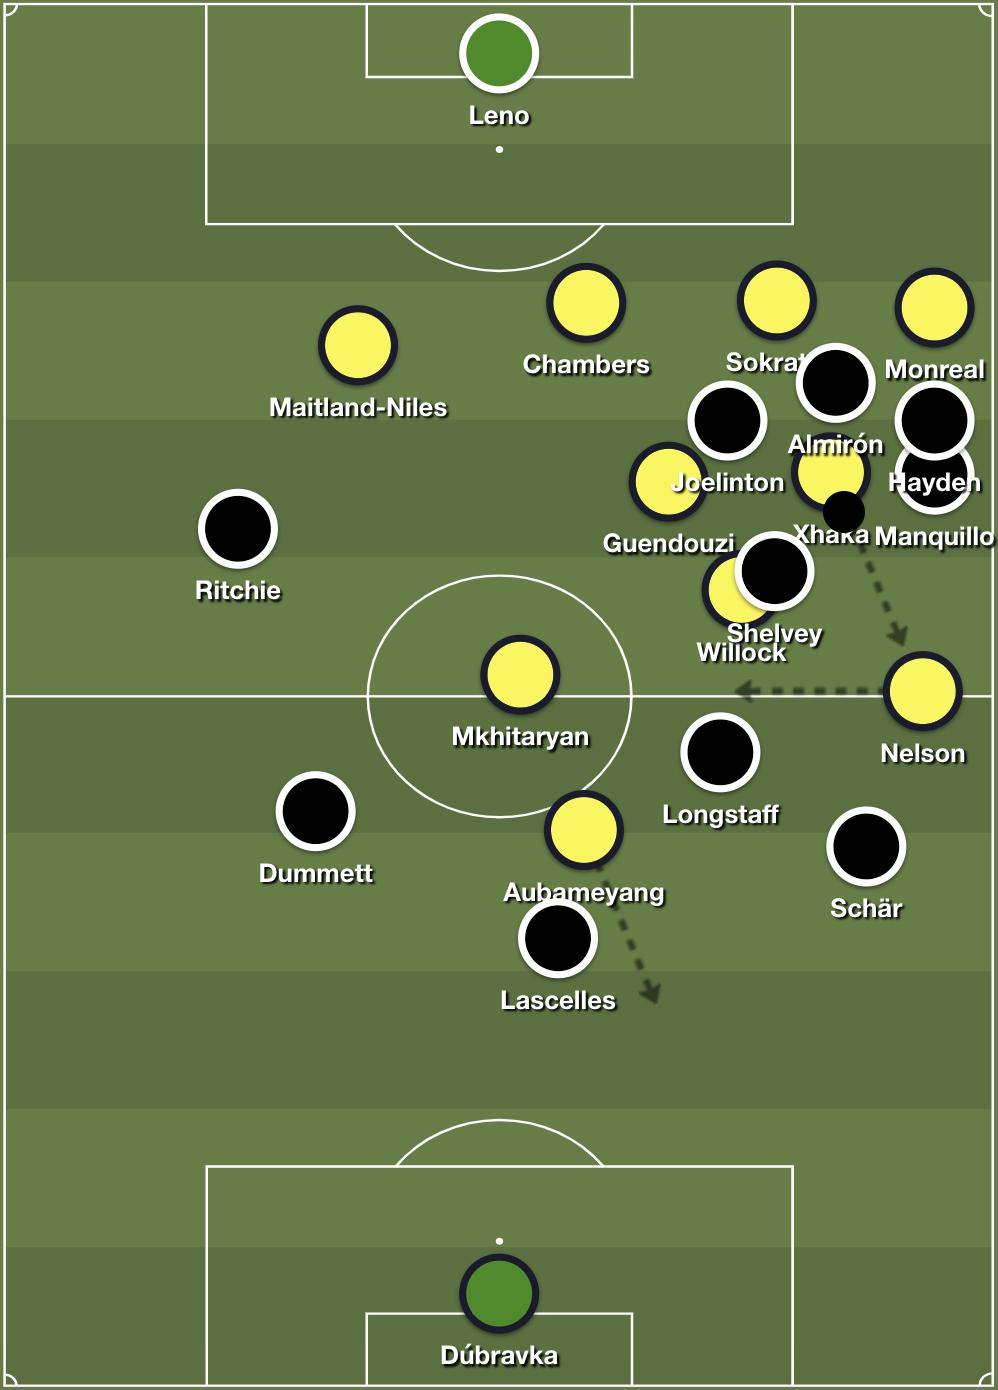 Newcastle exposed after midfield turnover due to overstretched verticality of their attacking structure